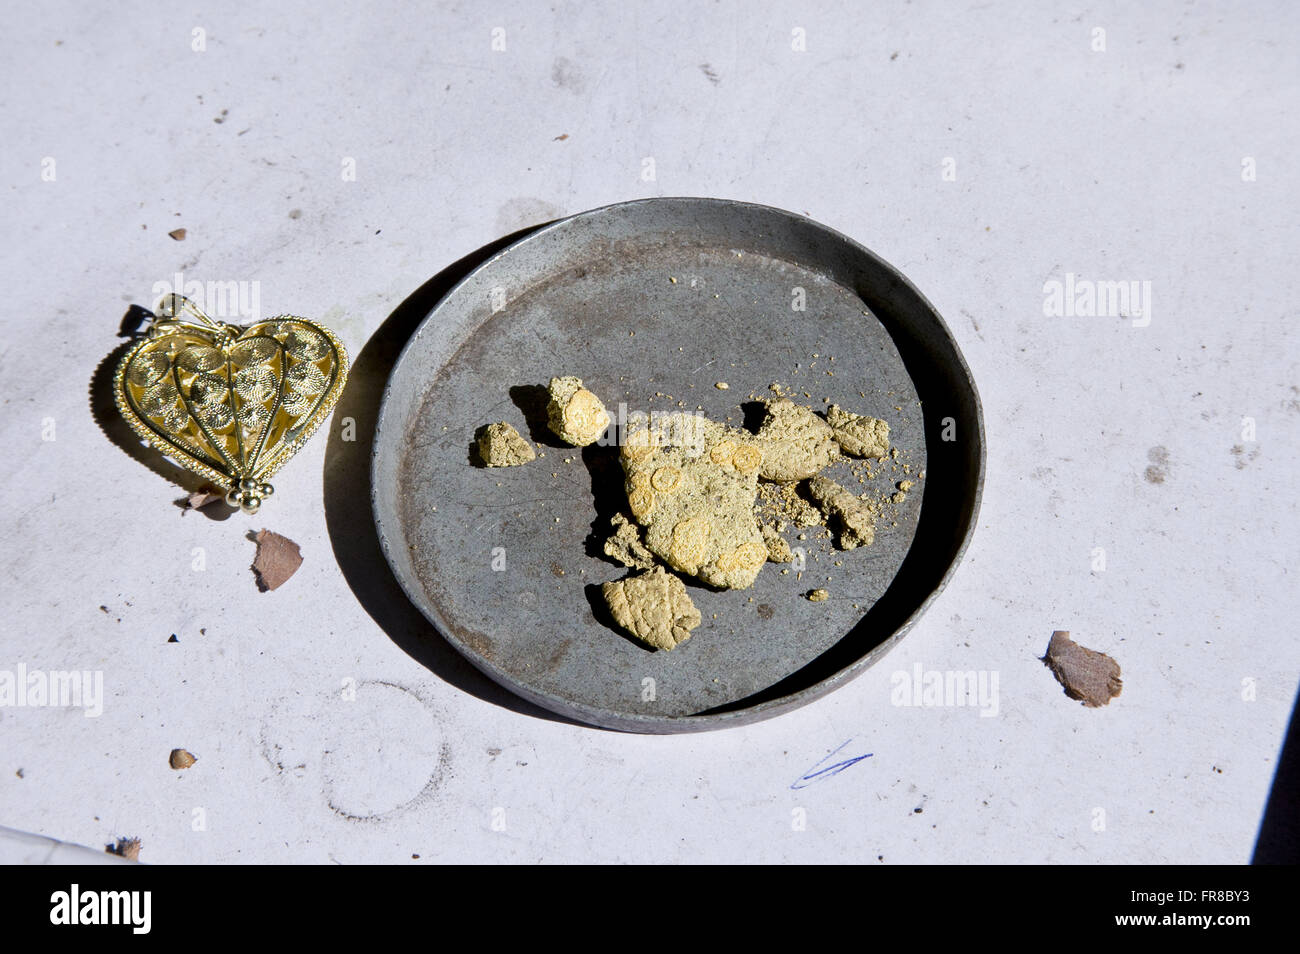 Detail of gold jewelry and its raw materials - gold powder - Stock Image